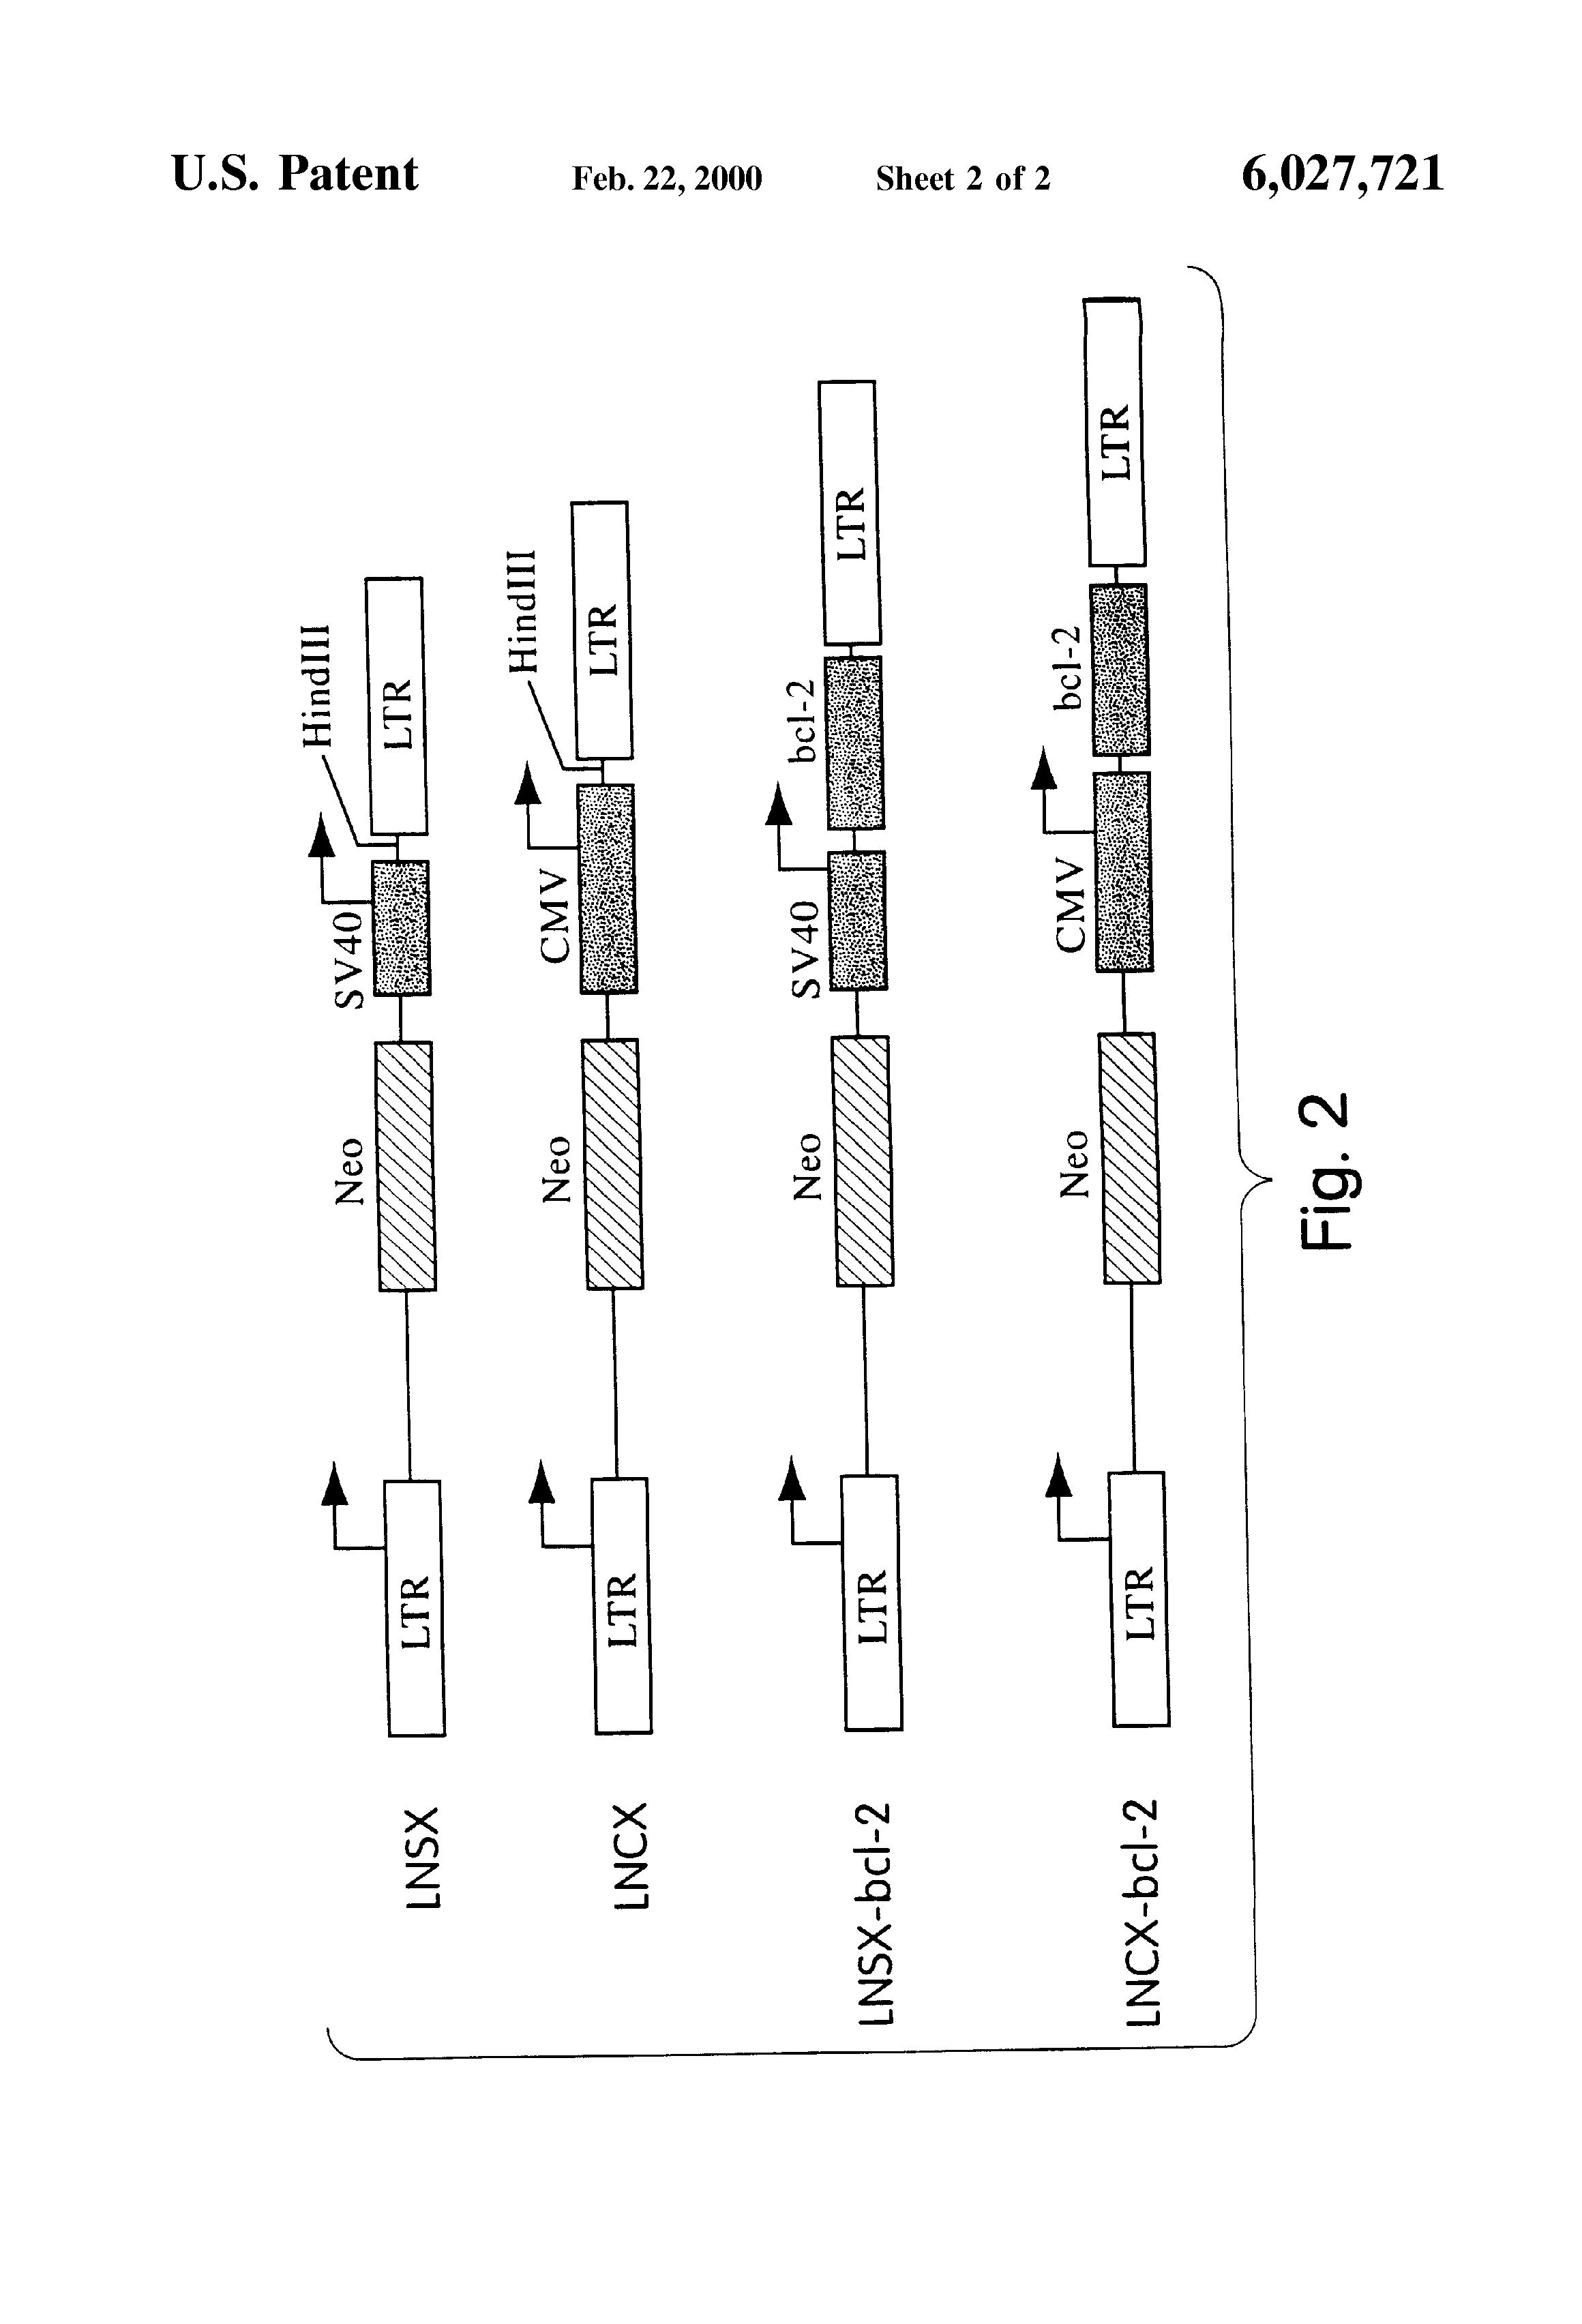 US 6027721 A - Device And Method For Encapsulated Gene Therapy - The